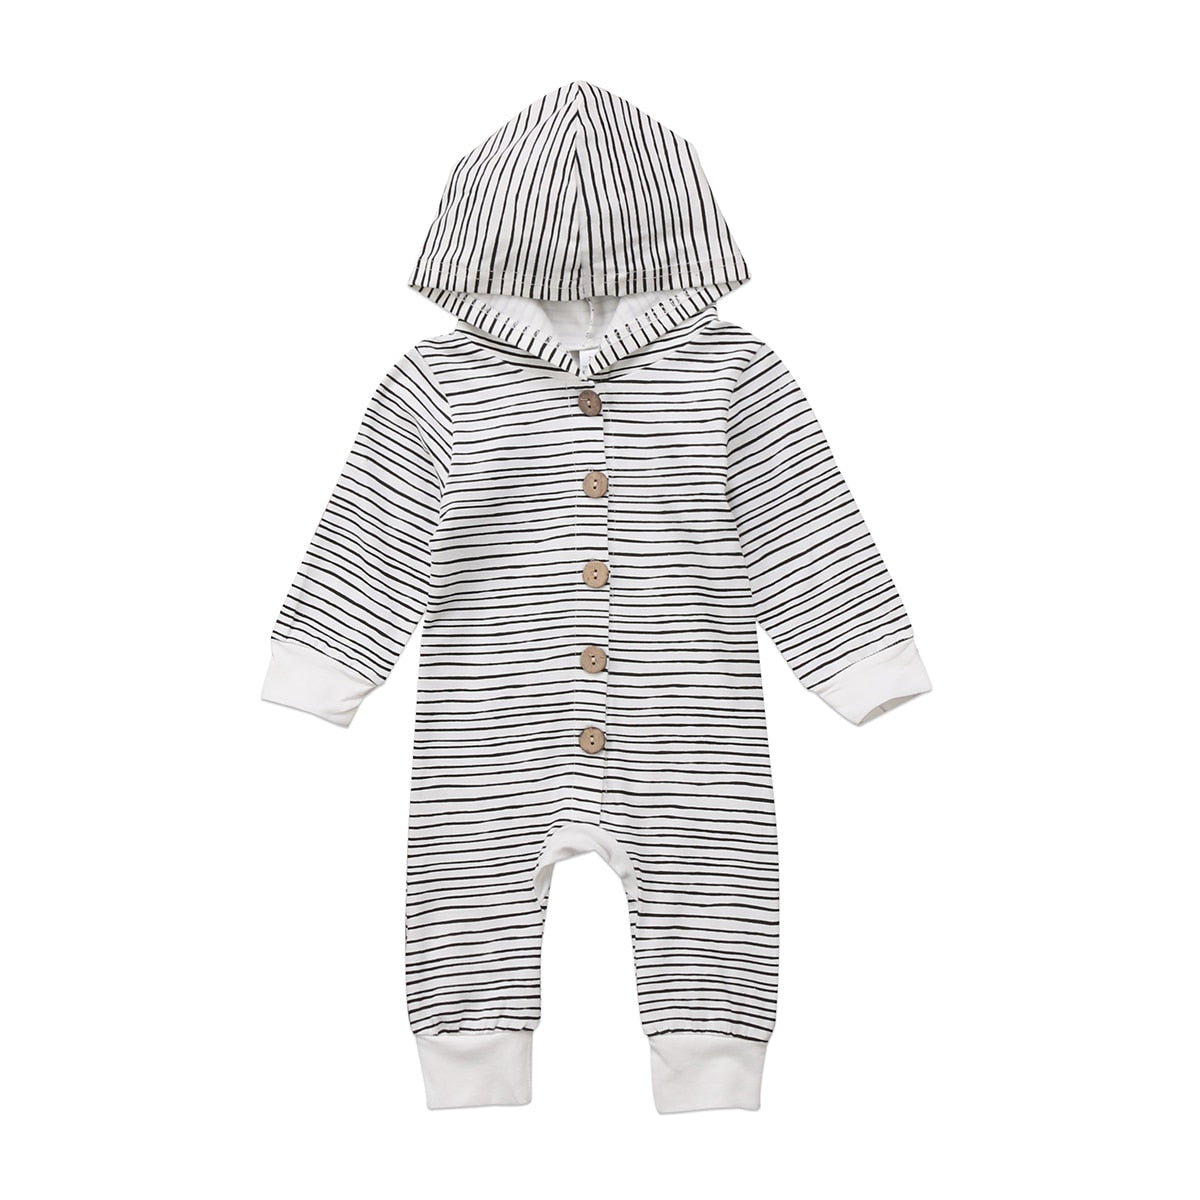 Newborn Infant Baby Boys Girls Striped Romper Long Sleeve Single-breasted Jumpsuit Clothes Outfits-eosegal